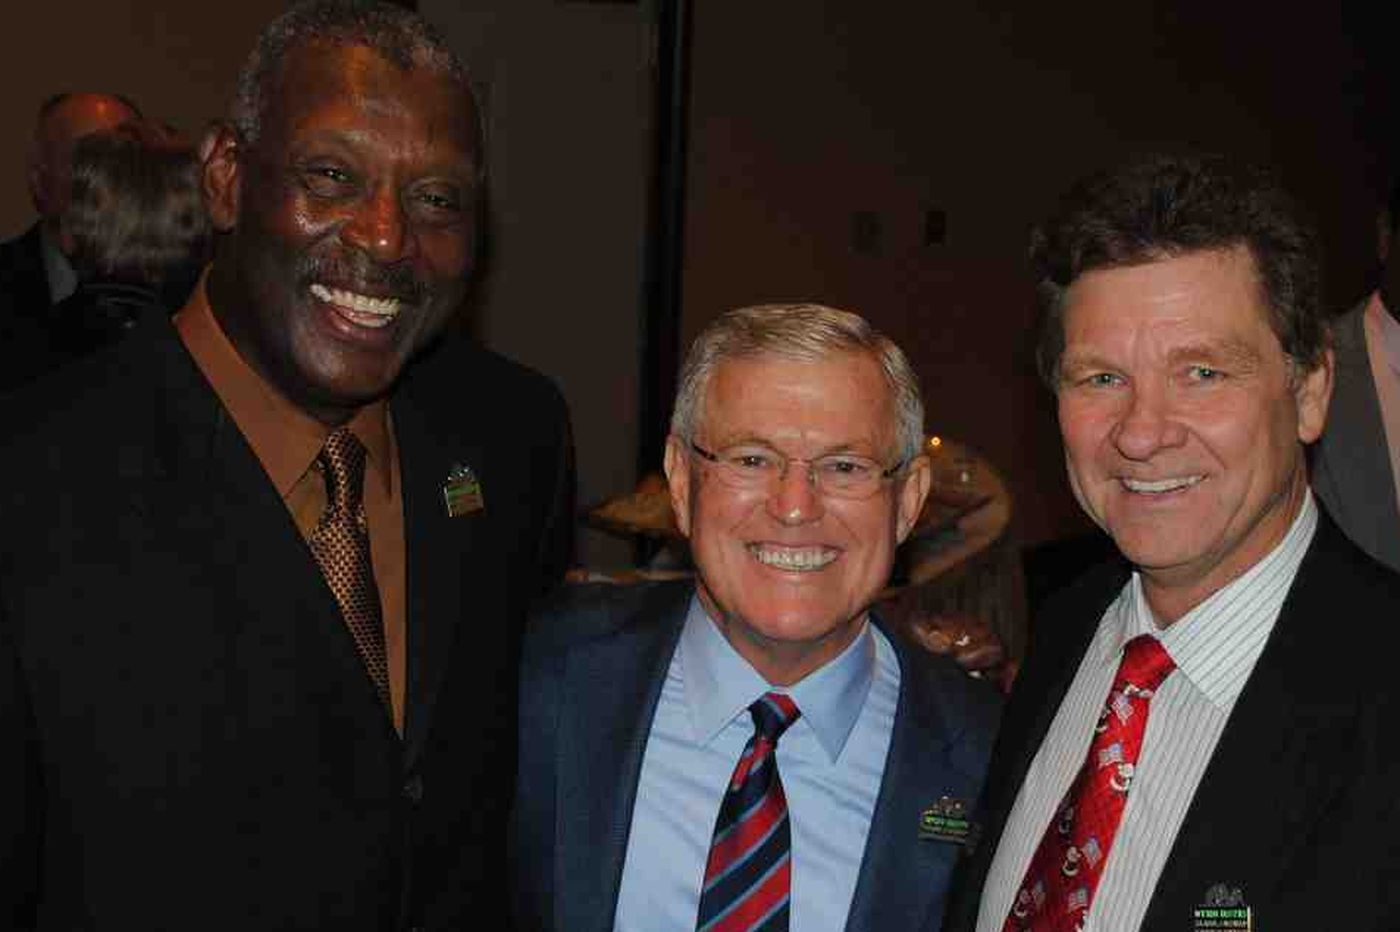 Harold Carmichael managed to keep his Hall of Fame selection a secret for nearly two days